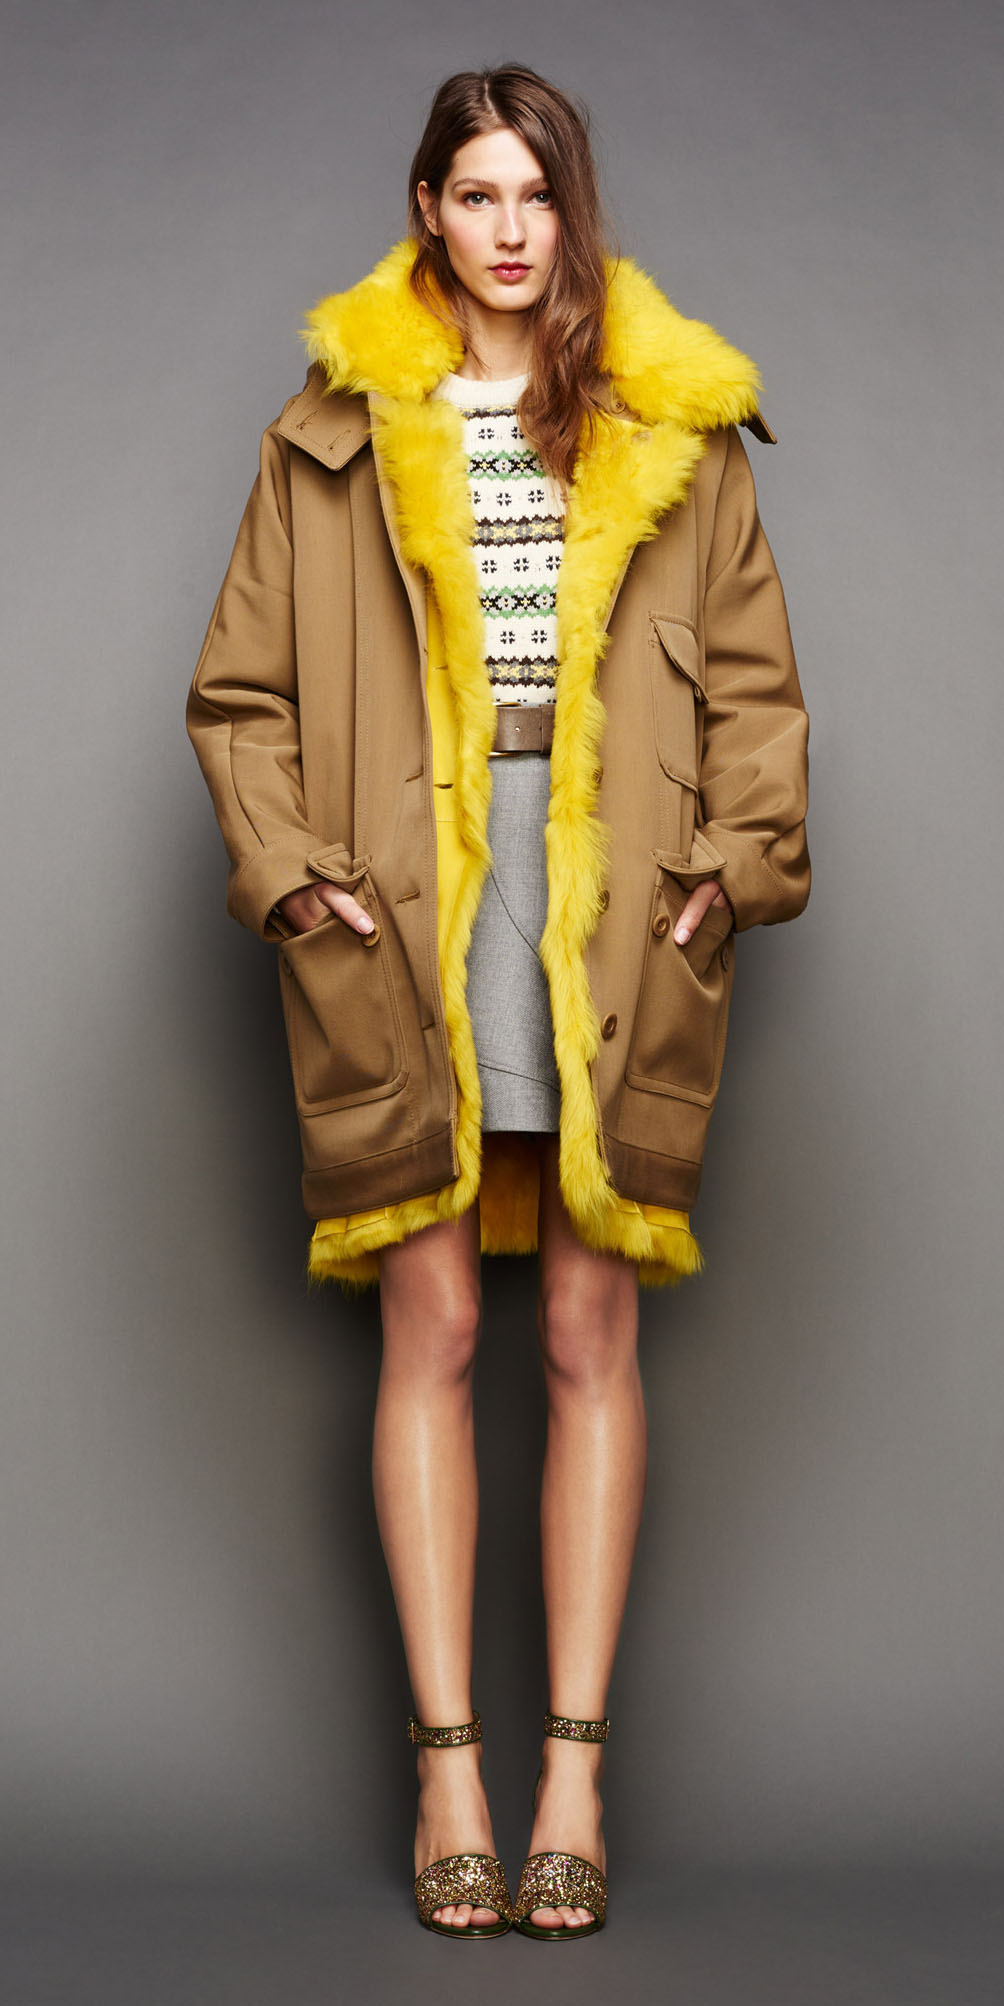 grayl-mini-skirt-white-sweater-print-fairisle-belt-jcrew-hairr-tan-shoe-sandalh-camel-jacket-coat-parka-fall-winter-outfit-lunch.jpg